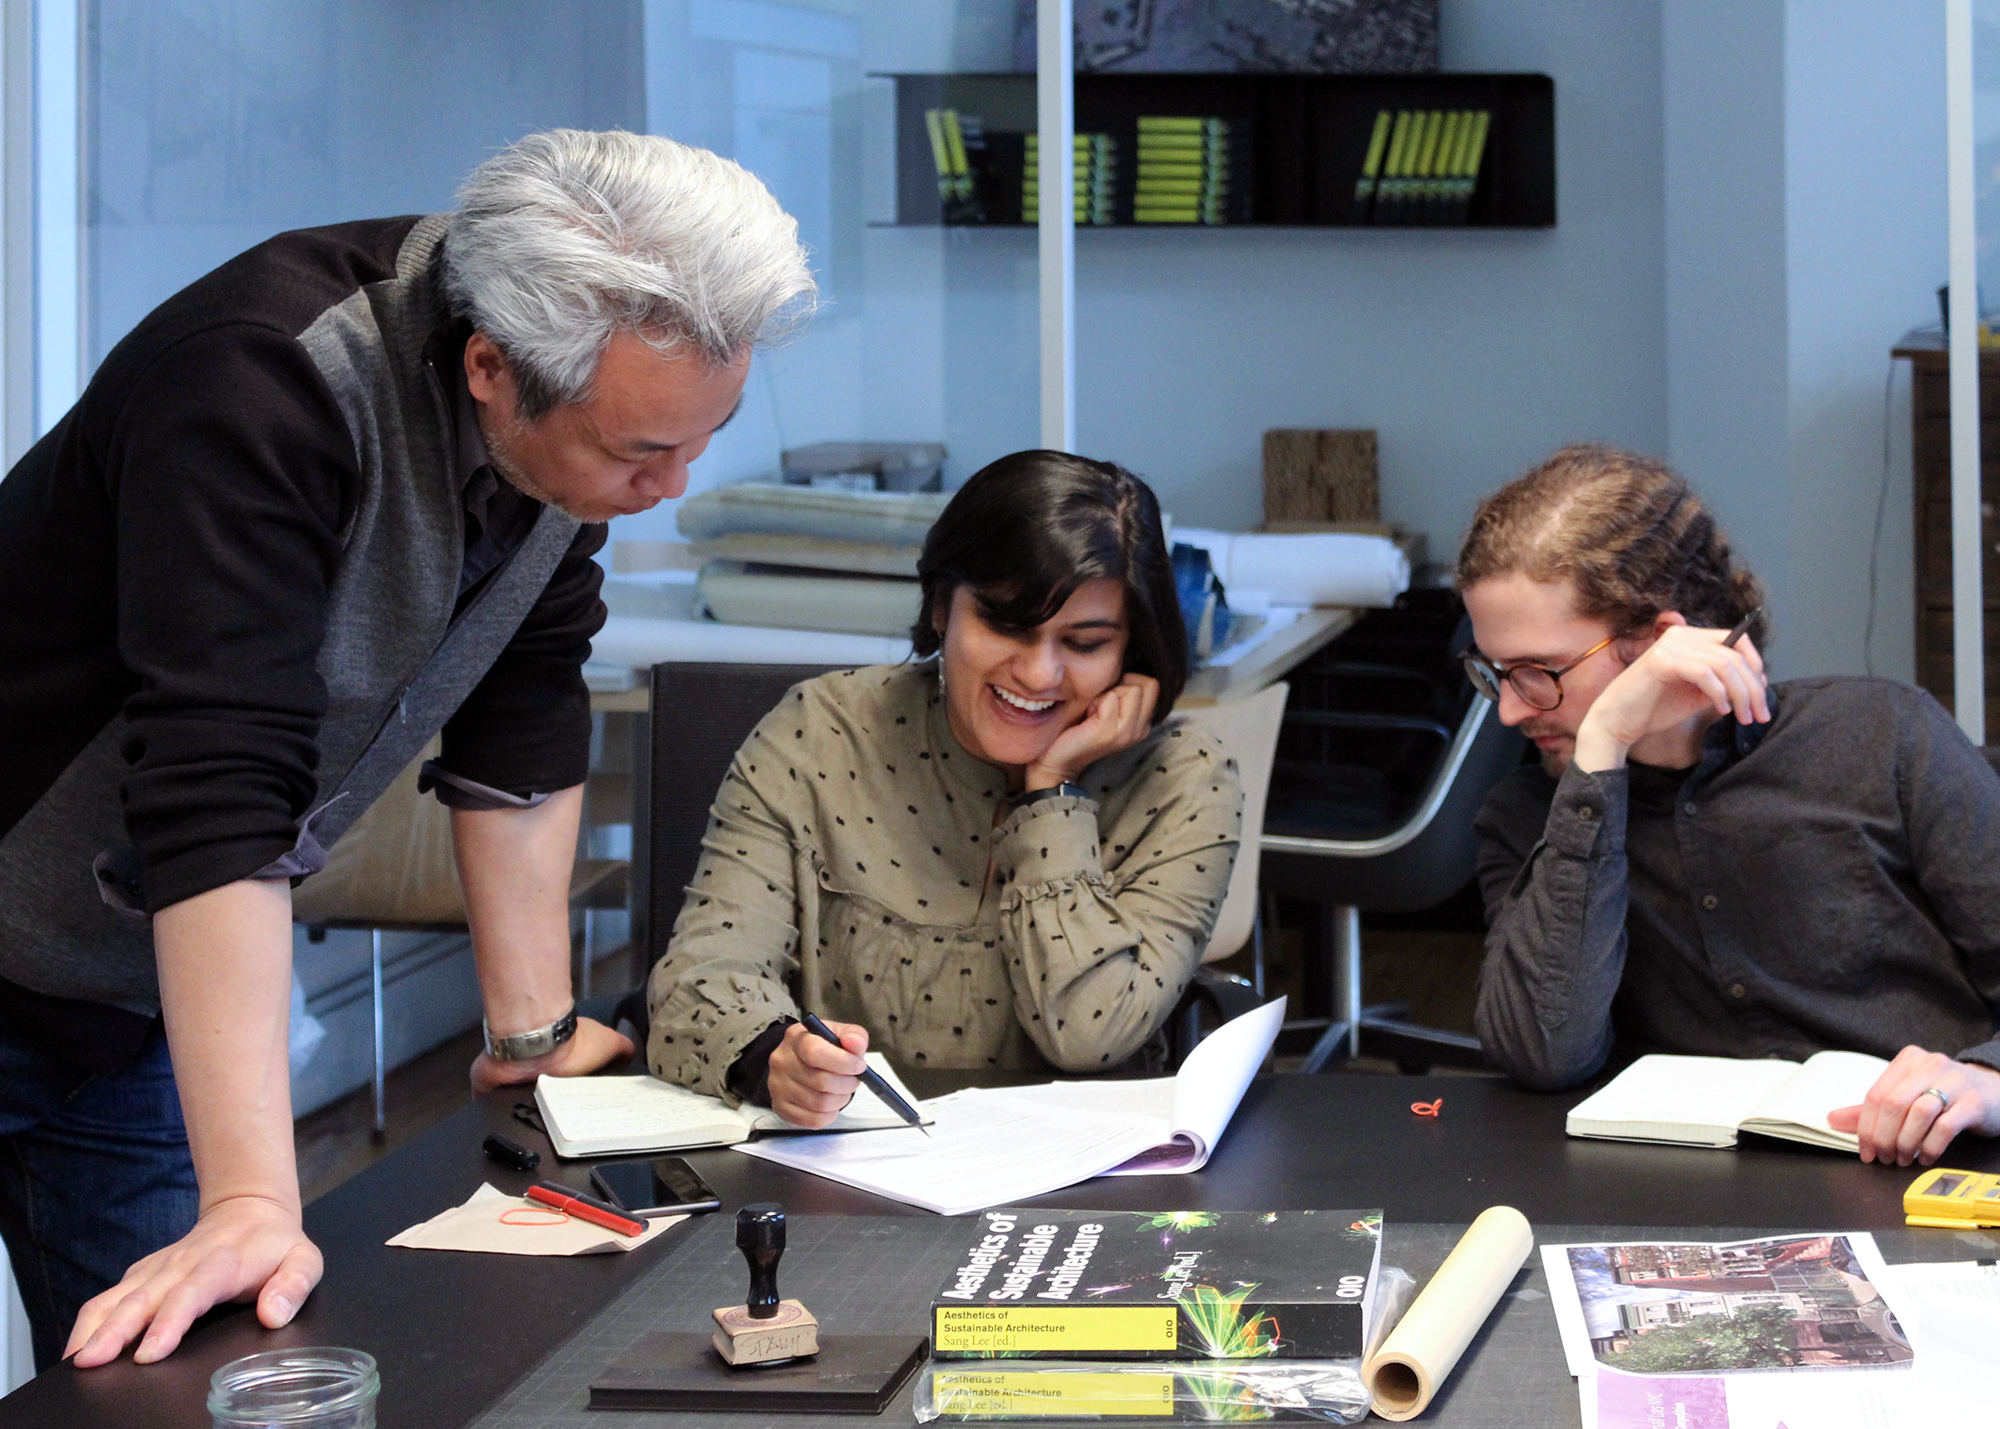 Firm Culture - A successful design practice creates a working environment that is relaxed and inspirational, yet focused on providing the best possible service to its clients. We are skilled designers, architects, and managers with diverse backgrounds who support a collaborative workplace. Each new team member is assigned a mentor who introduces them to the office culture and process. This relationship continues throughout the full term of employment and gives the entire staff insight, training, and a voice in the growth and success of our firm.